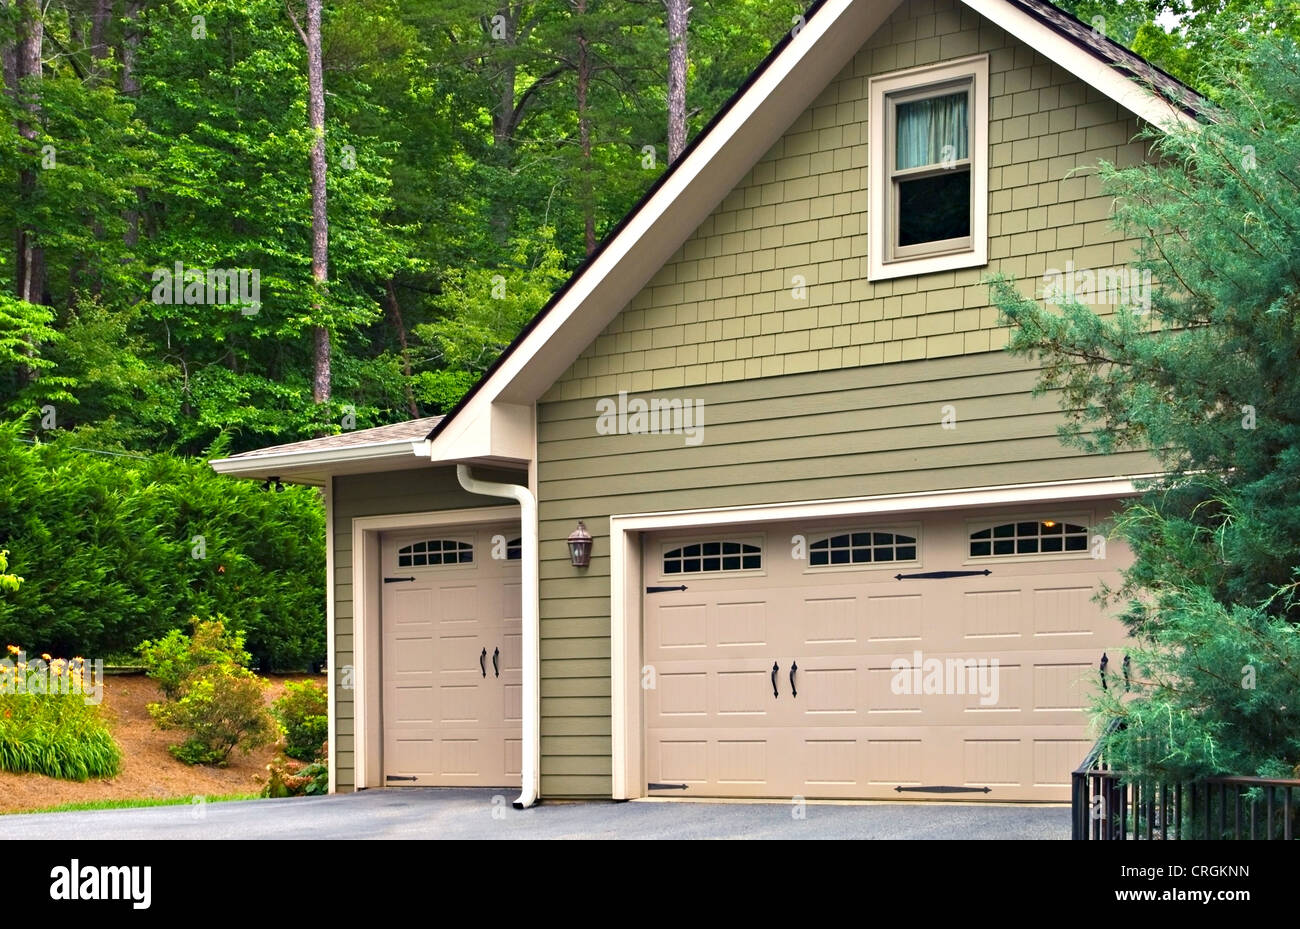 Garage doors on a modern house. Double doors with windows on one side and an off-set single beside it. - Stock Image